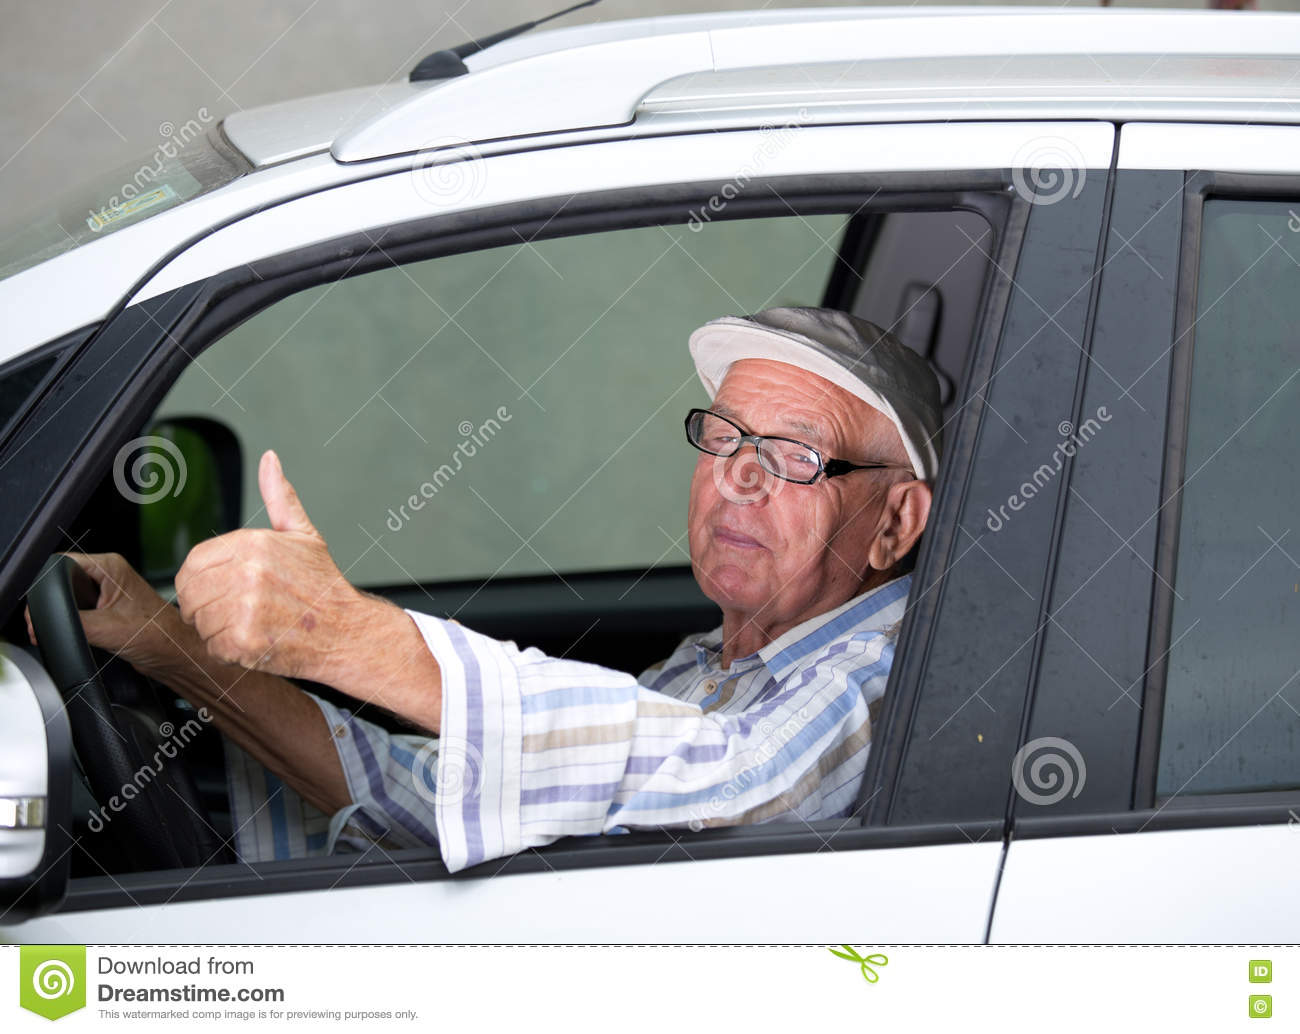 Old man driving car stock photo. Image of leasing, driver - 78035648